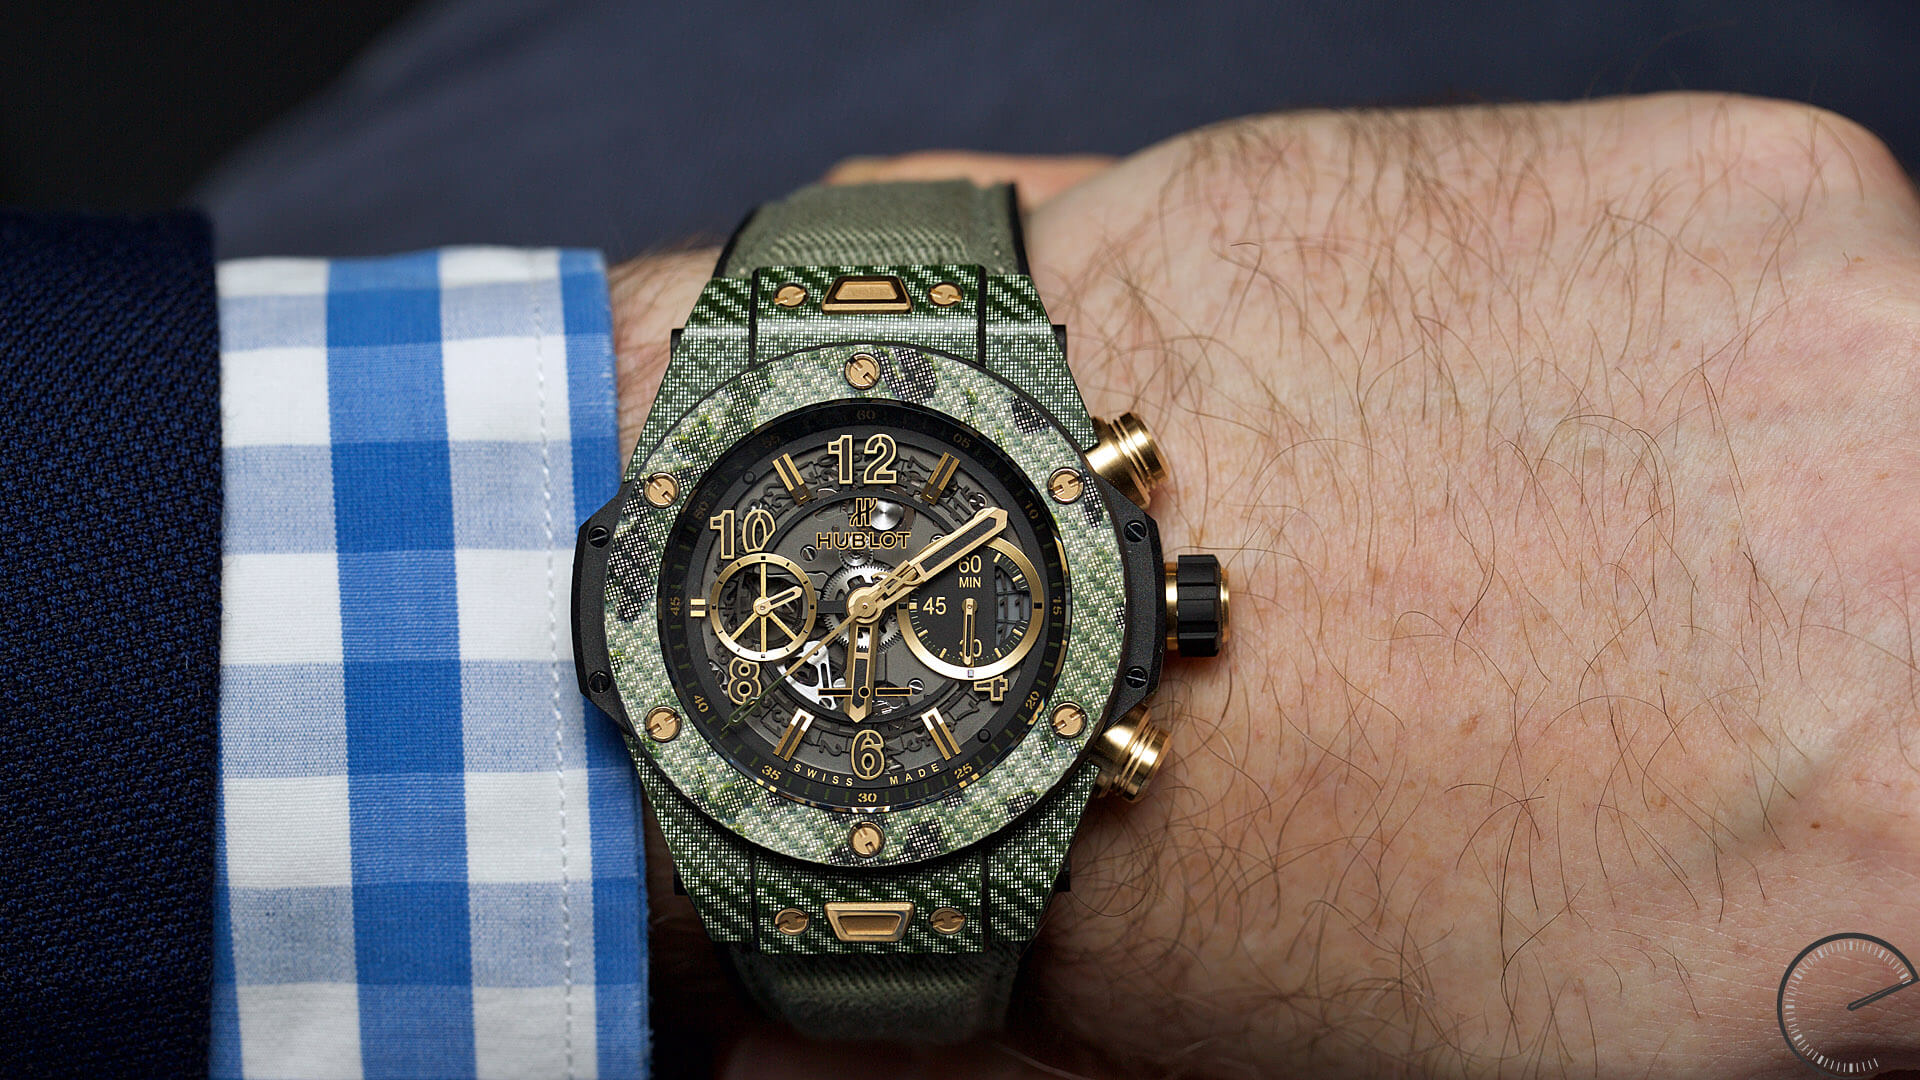 Hublot_Big_Bang_Unico_Italia_Independent_Green_Camo_wrist1 - ESCAPEMENT magazine - watch reviews by Angus Davies